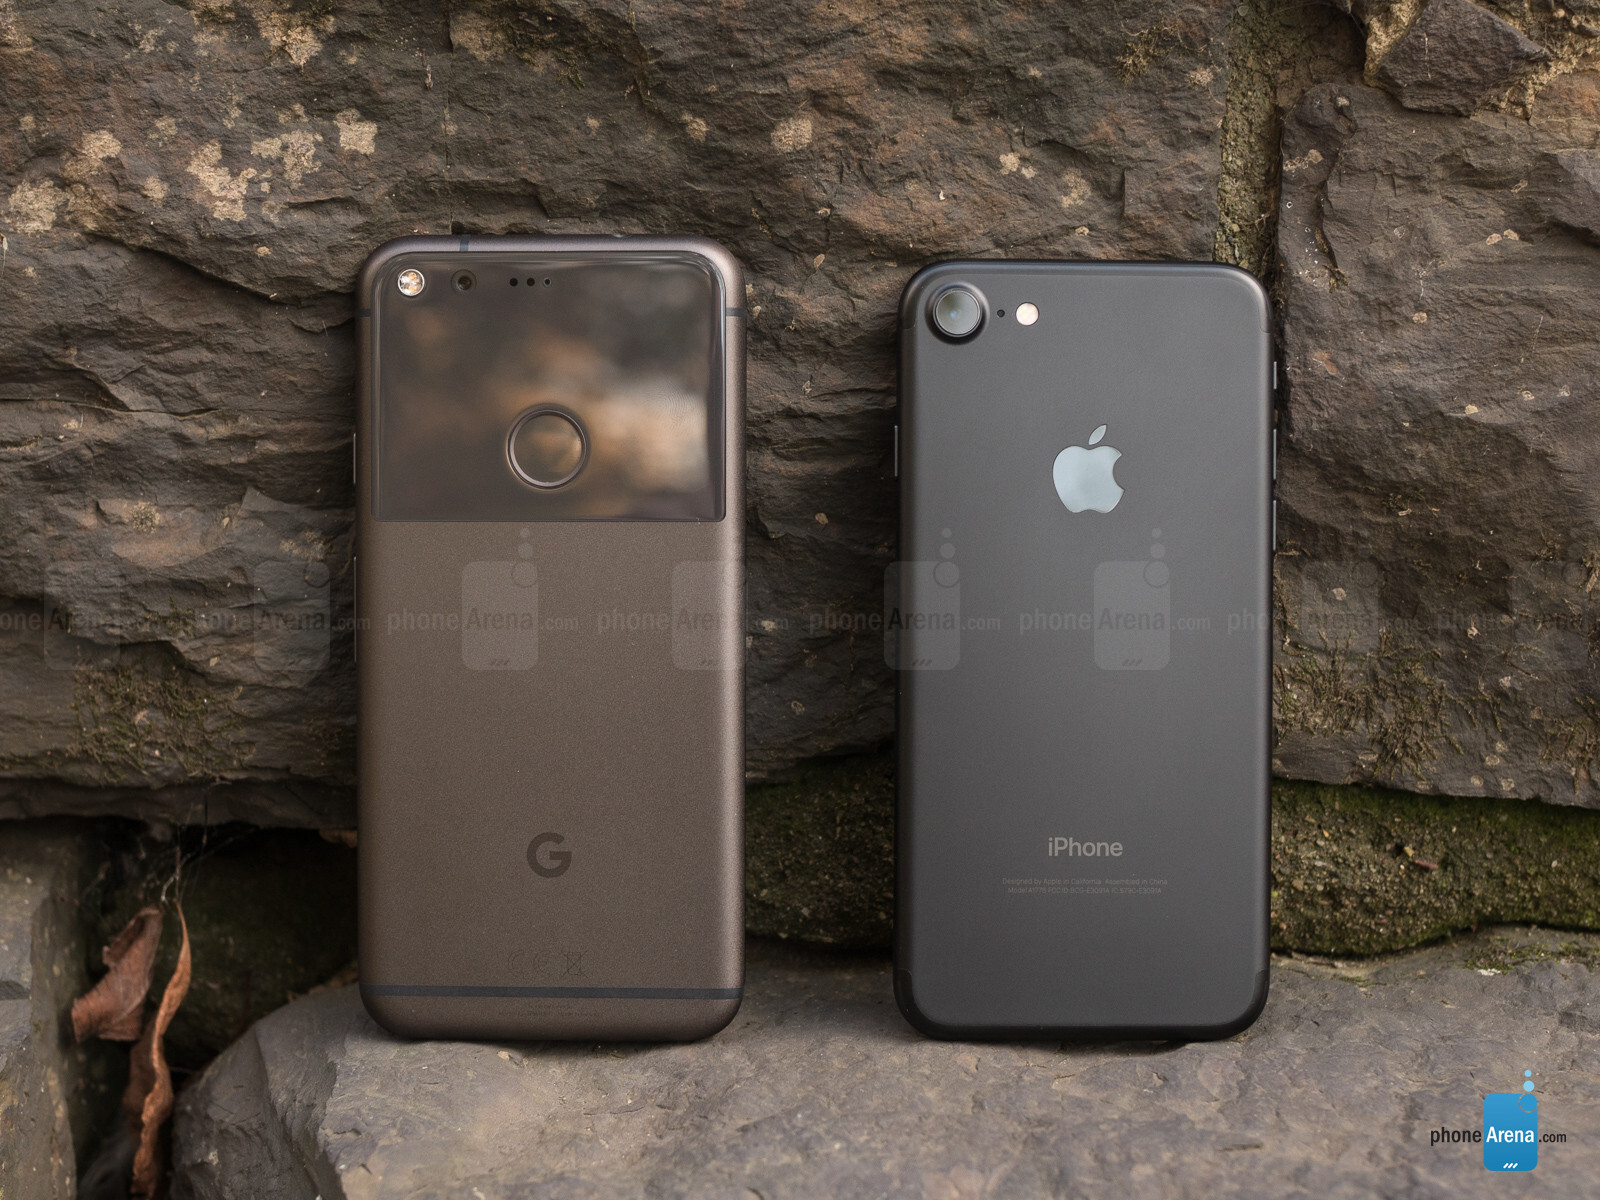 apple versus google no comparison The true comparison between apple and google's smartphones is  google and  apple are not just battling each other – they also face.